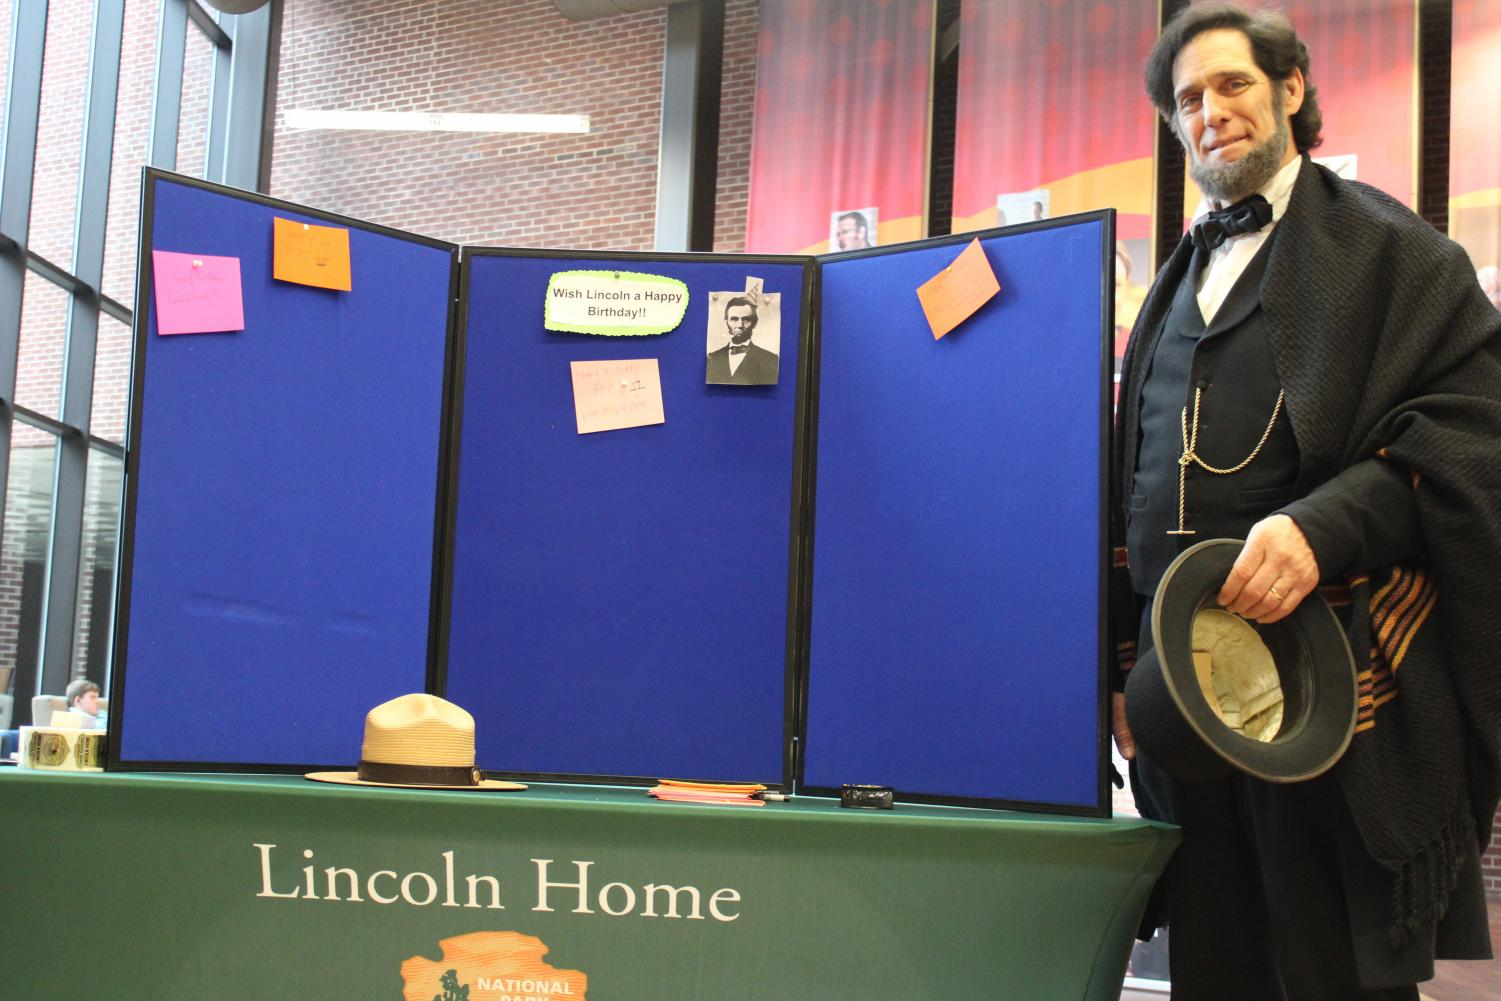 The Illinois Freedom Project is a traveling exhibit that has made its way to LLCC. The Lincoln exhibit aims to share historical stories about freedom from people , places, and events in Illinois. Lincoln, in this photo, is celebrating his birthday with the students of LLCC